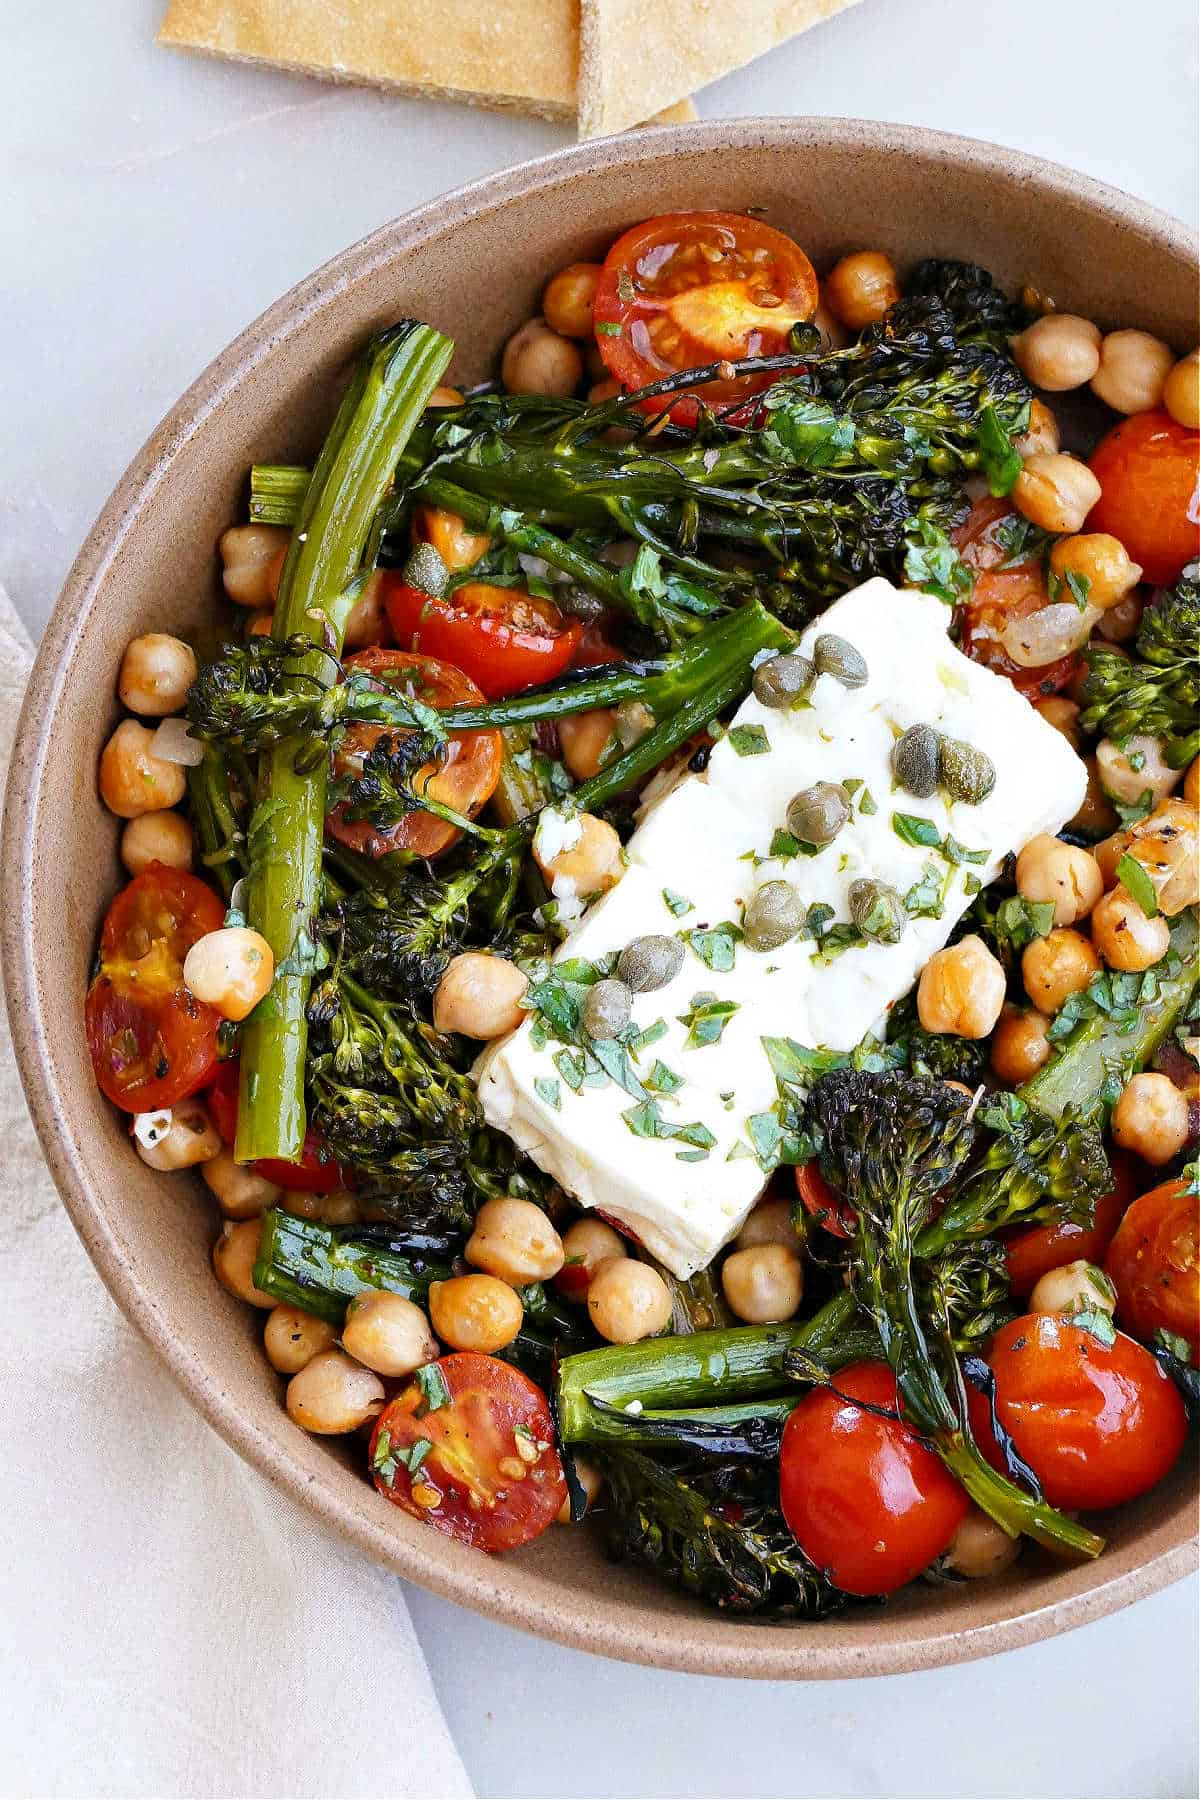 baked feta with vegetables and chickpeas in a serving bowl on a counter